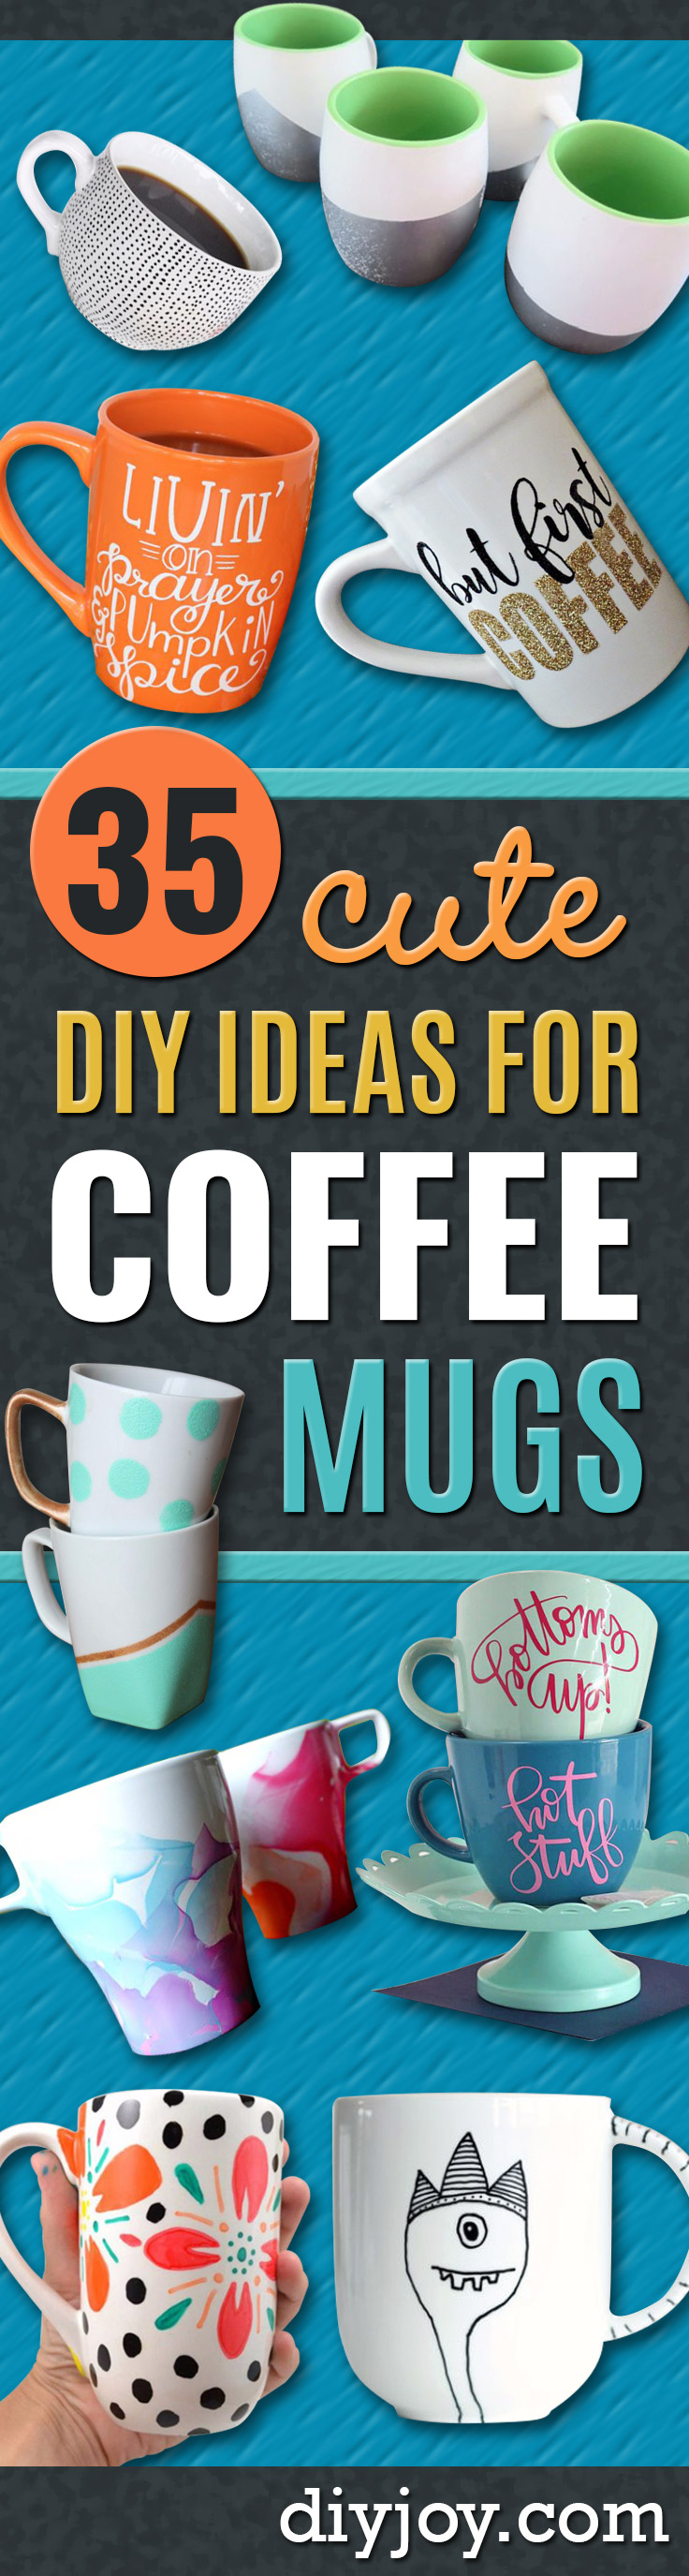 DIY Coffee Mugs - Easy Coffee Mug Ideas for Homemade Gifts and Crafts - Decorate Your Coffee Cups and Tumblers With These Cool Art Ideas - Glitter, Paint, Sharpie Craft, Nail Polish Water Marble and Teen Projects http://diyjoy.com/diy-coffee-mugs